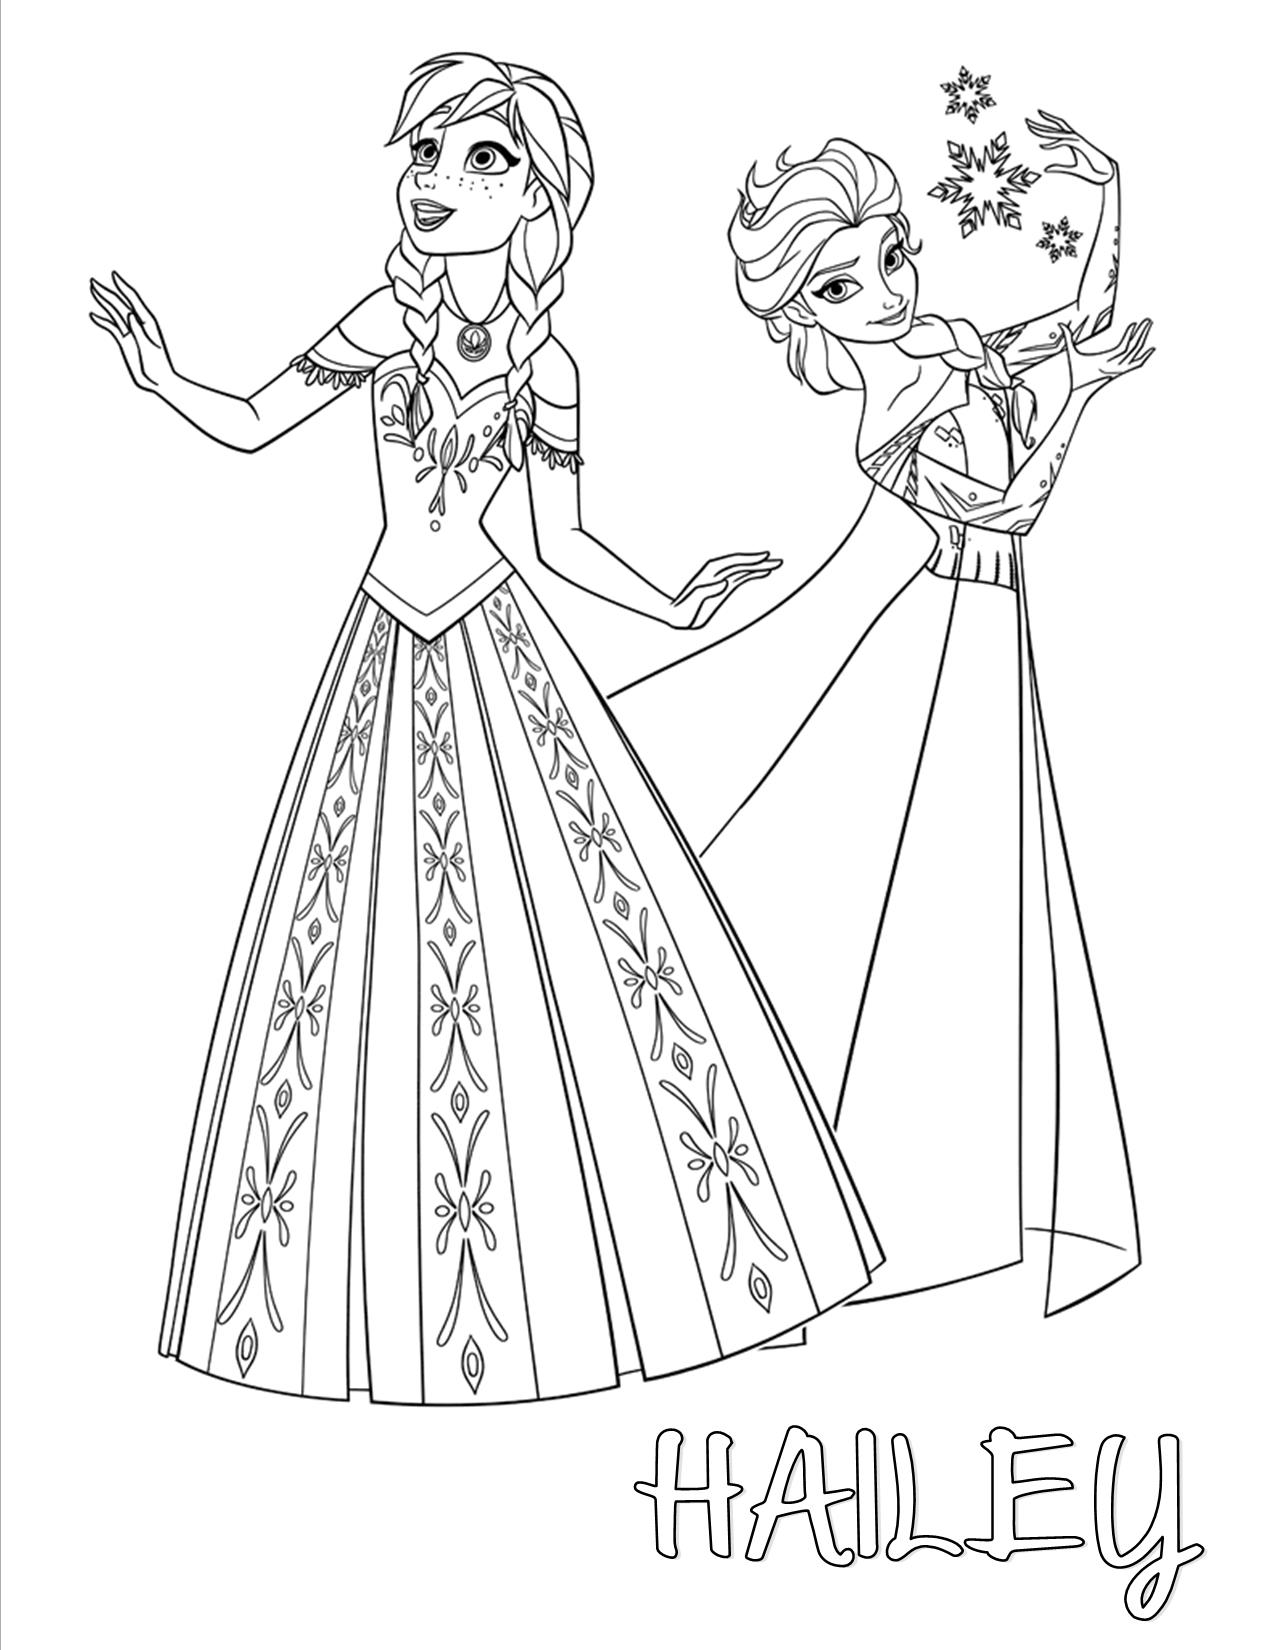 Frozen Coloring Pages Black And White : Frozen clipart black and white pixshark images